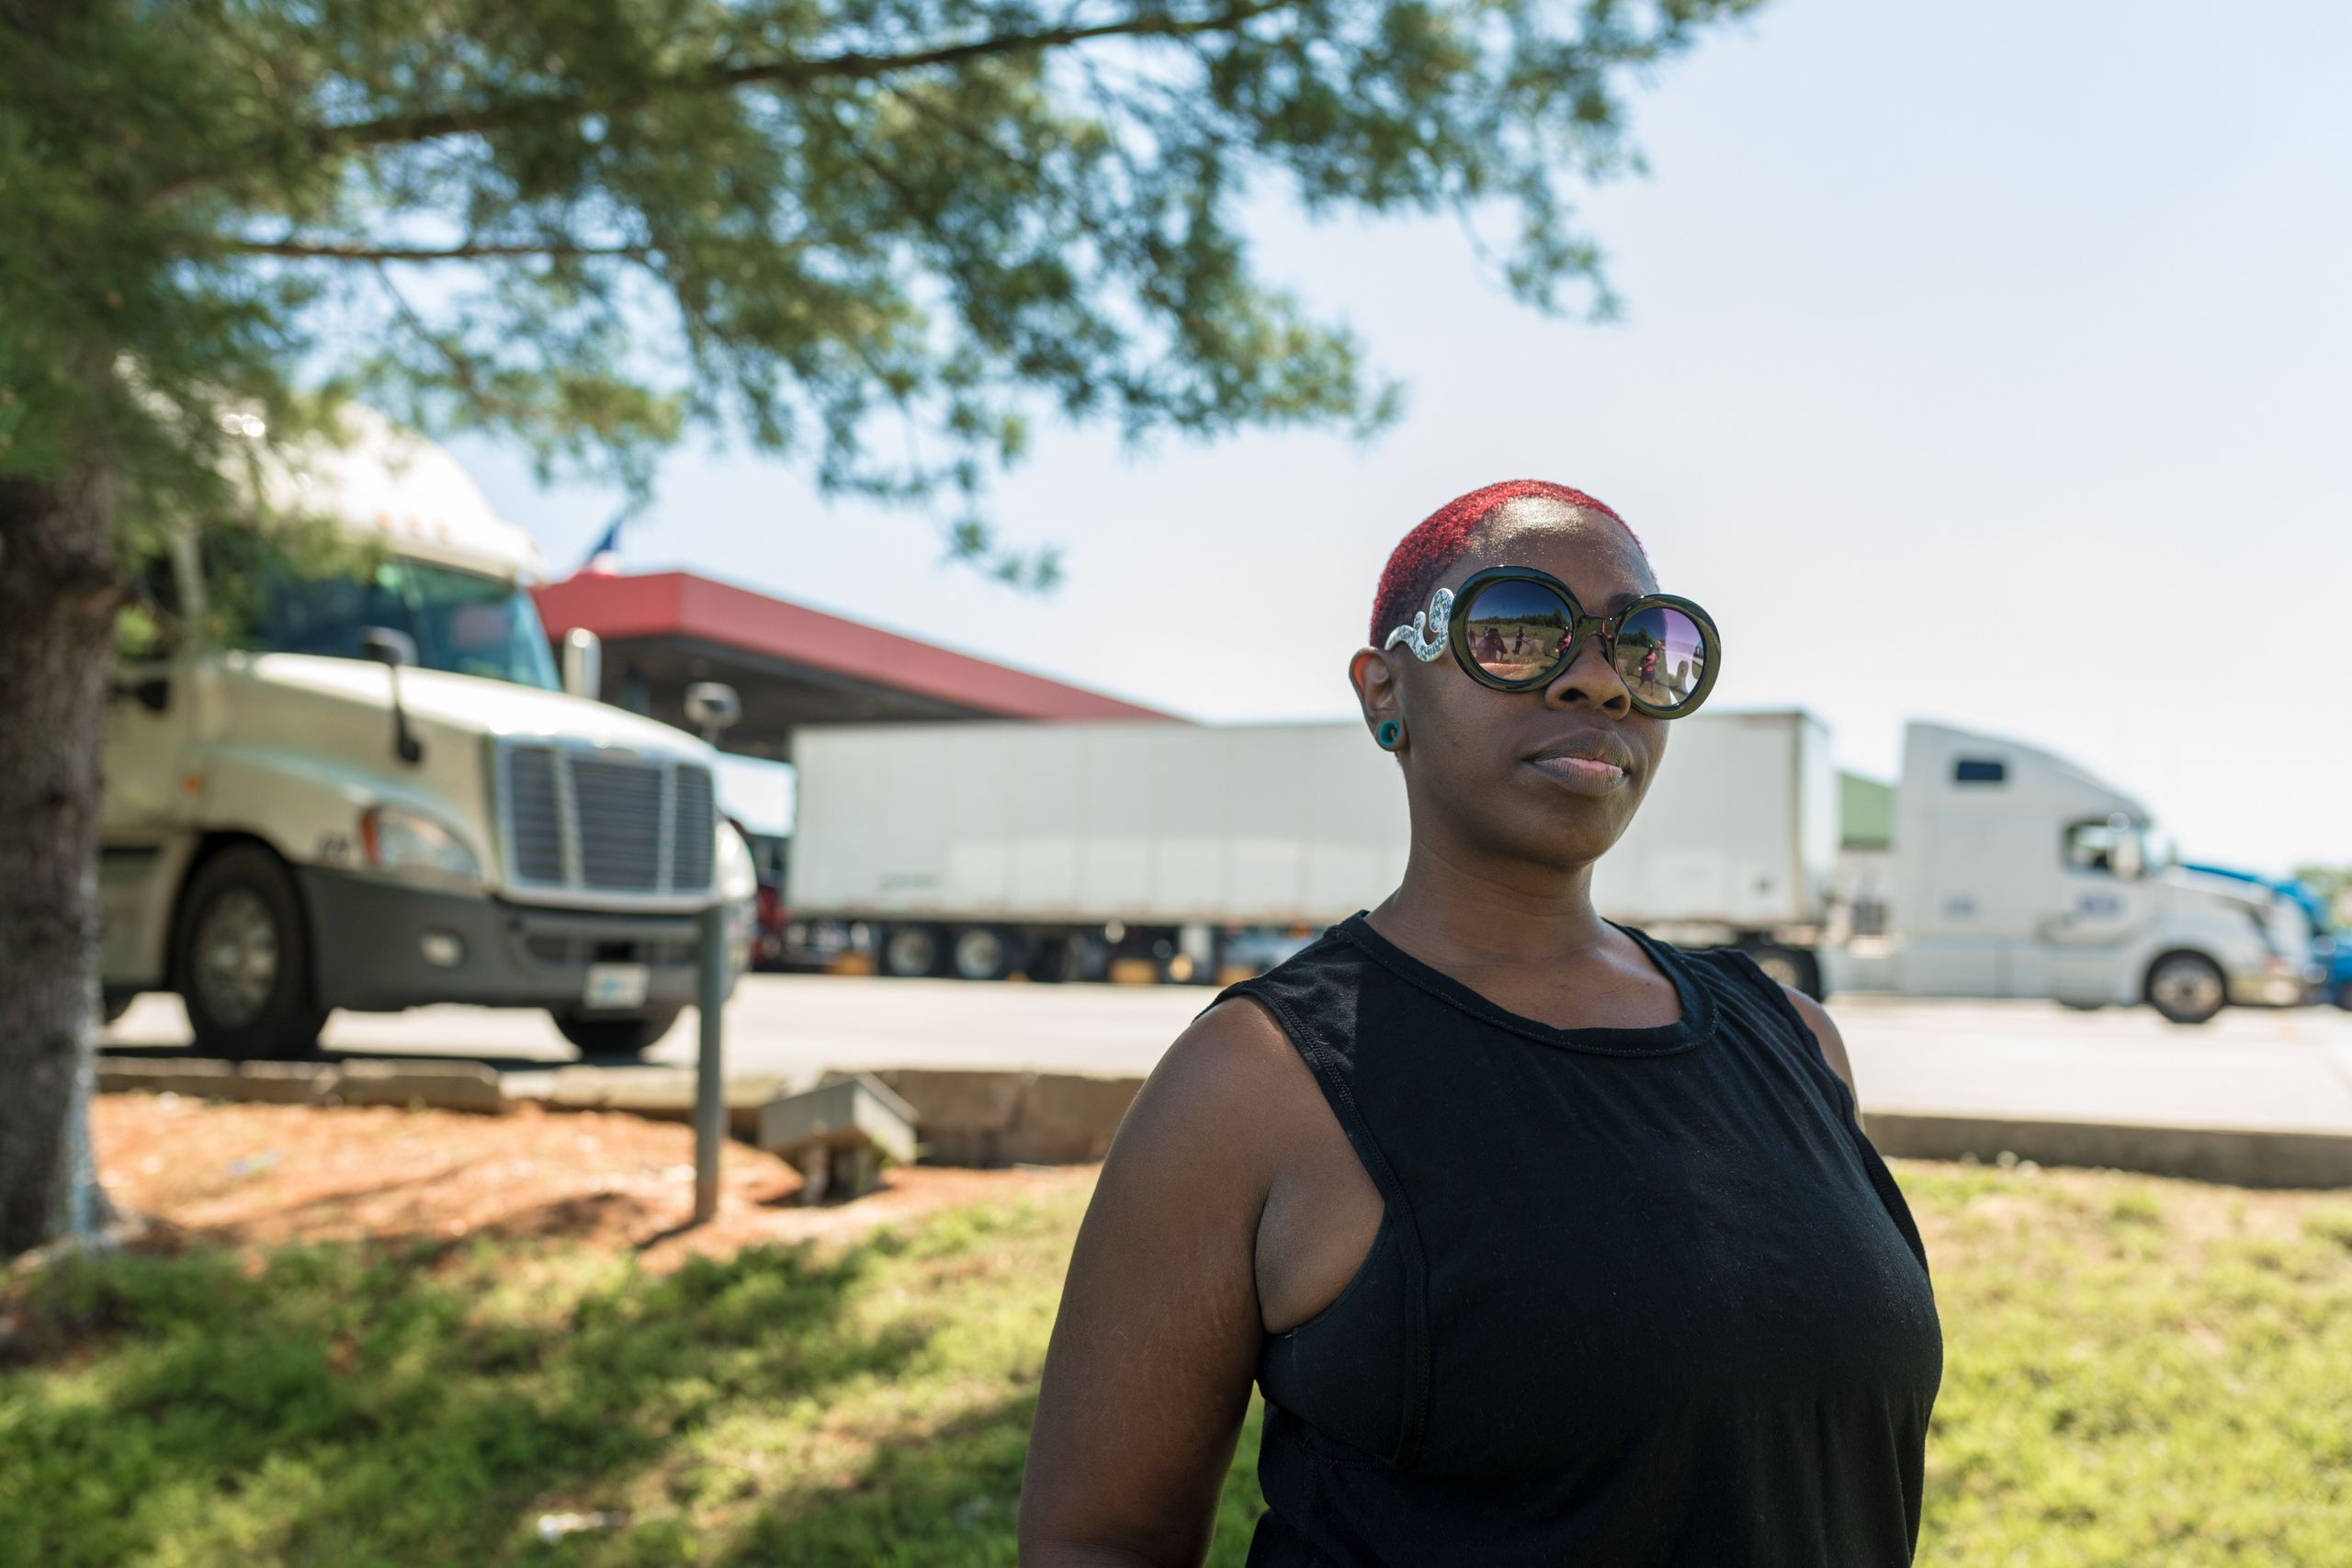 Carla Richelle credits her childhood in Birmingham, Alabama for teaching her safety skills that she uses today as a truck dri